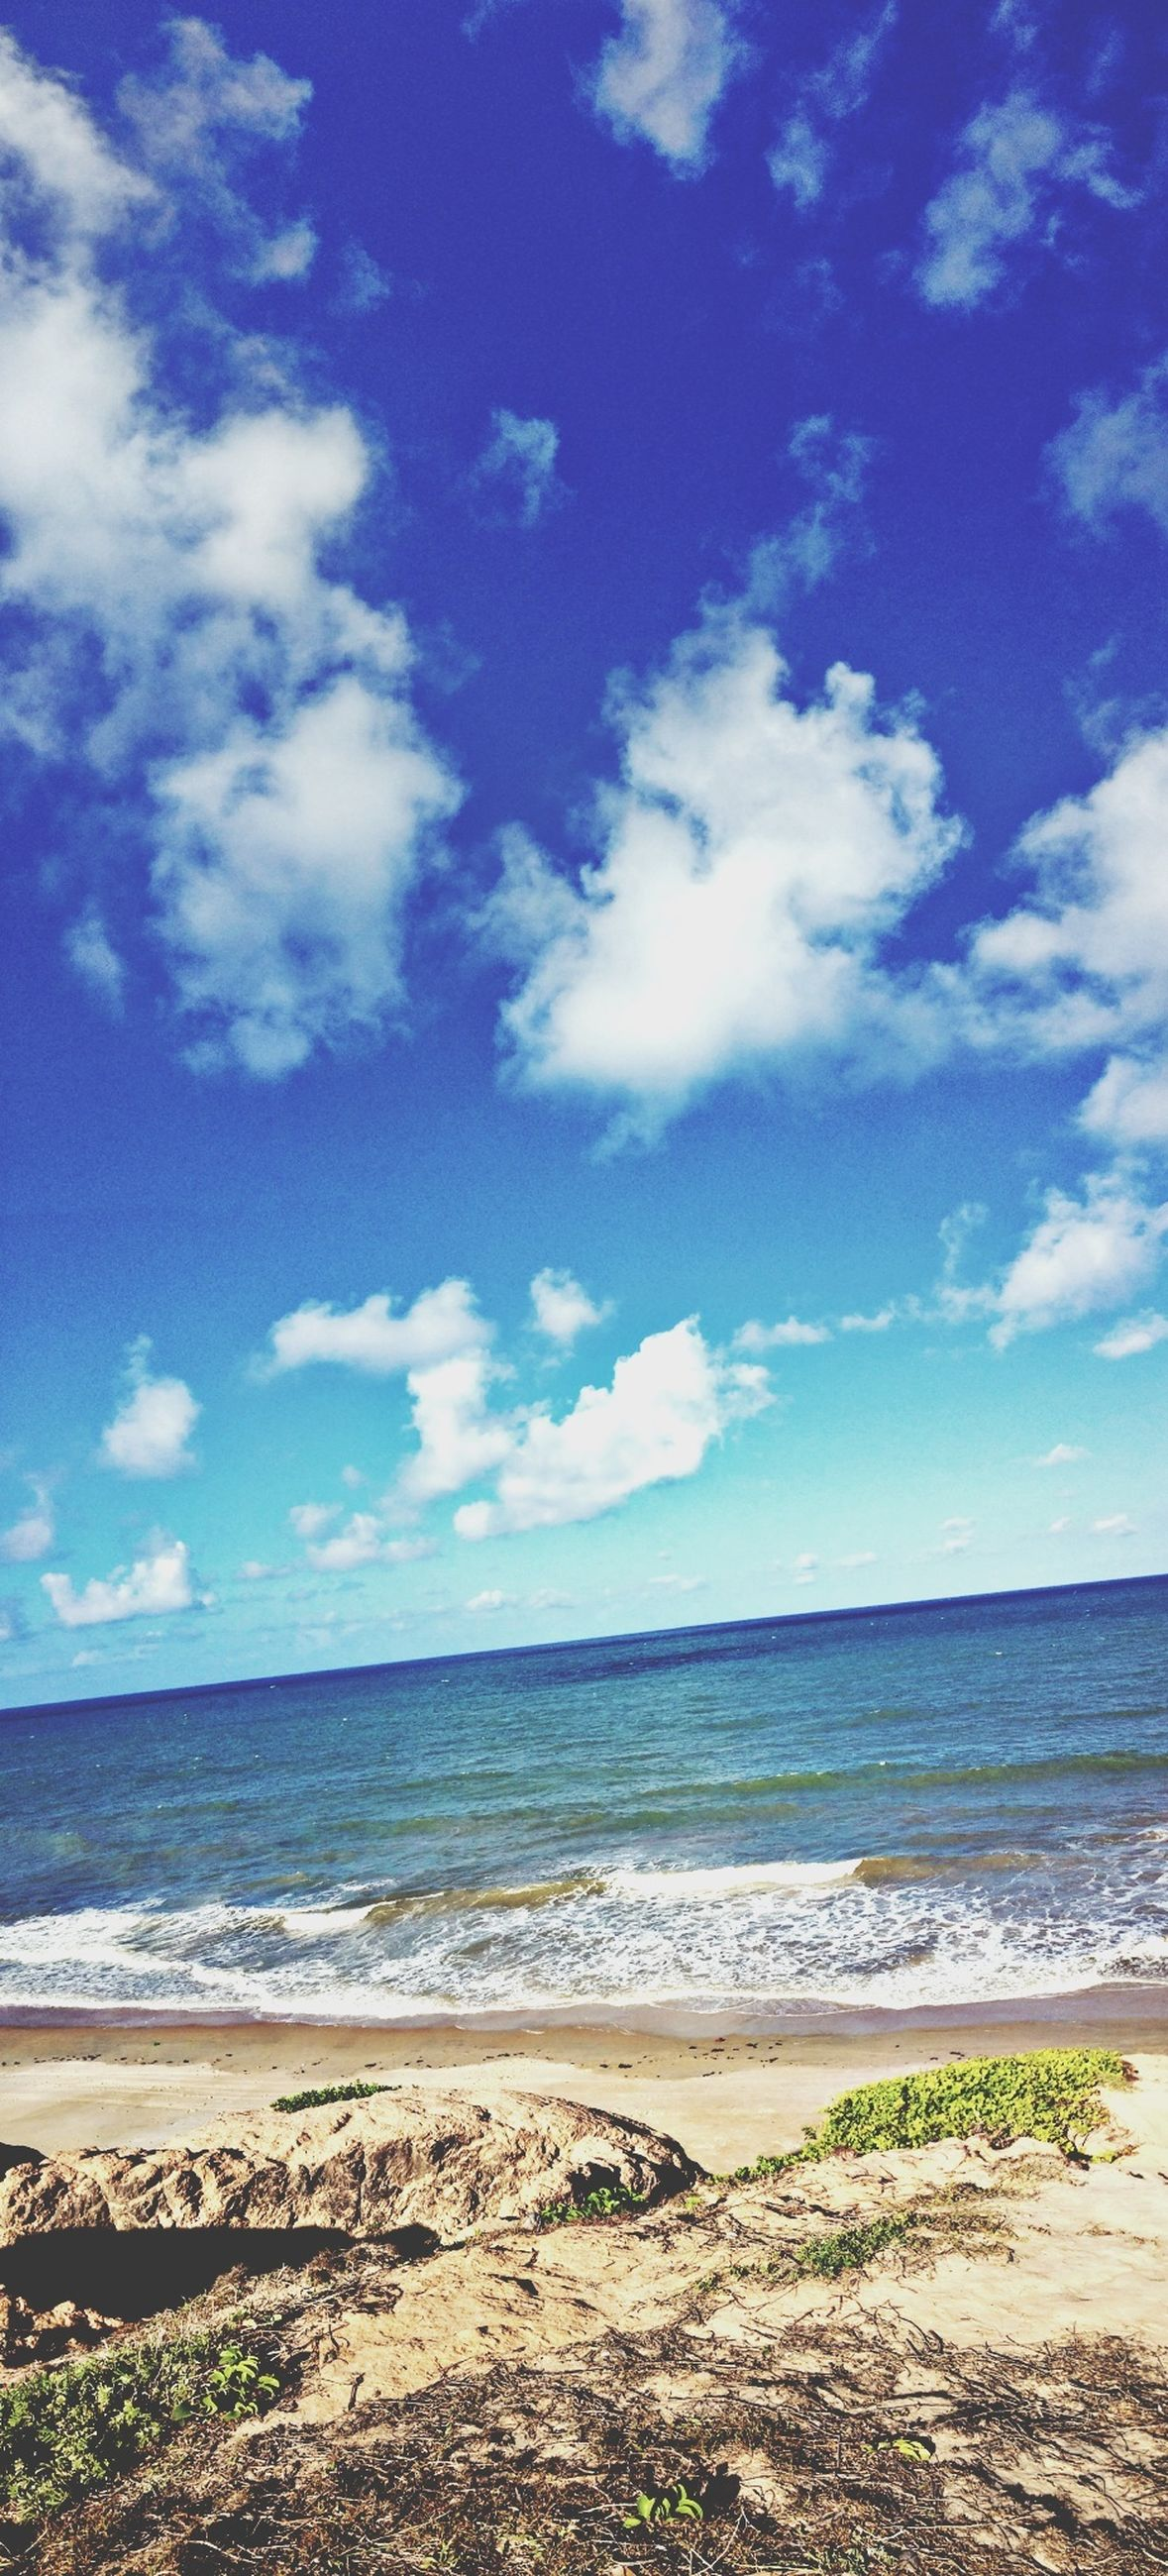 beach, sea, sand, sky, shore, water, tranquil scene, tranquility, scenics, horizon over water, beauty in nature, nature, cloud - sky, coastline, cloud, blue, idyllic, outdoors, day, remote